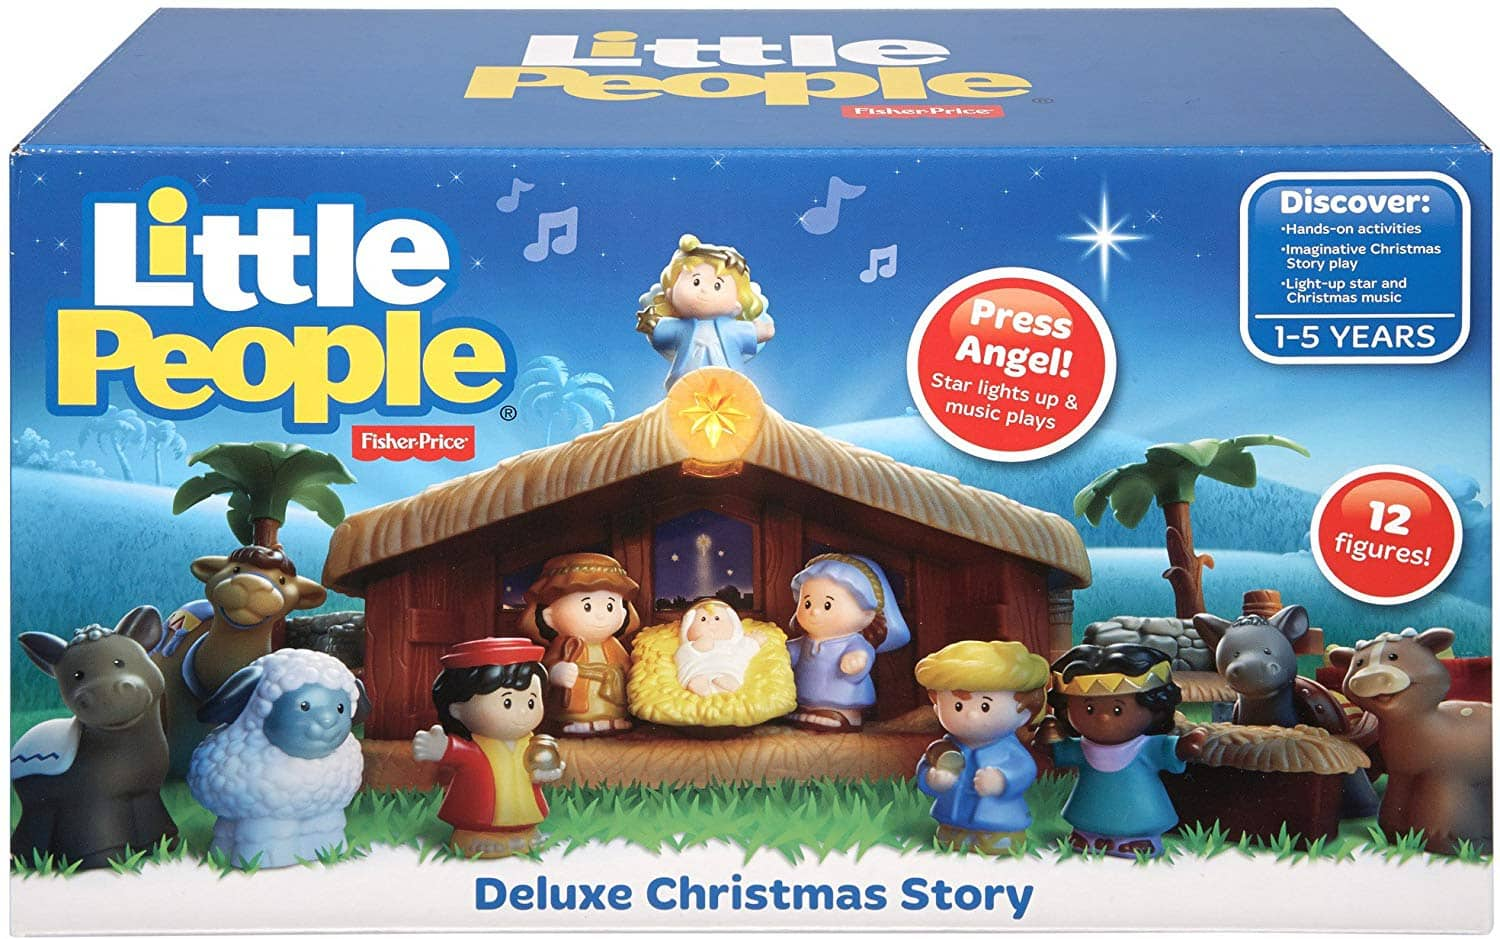 Fisher Price Little People Deluxe Christmas Story Nativity Set 21 78